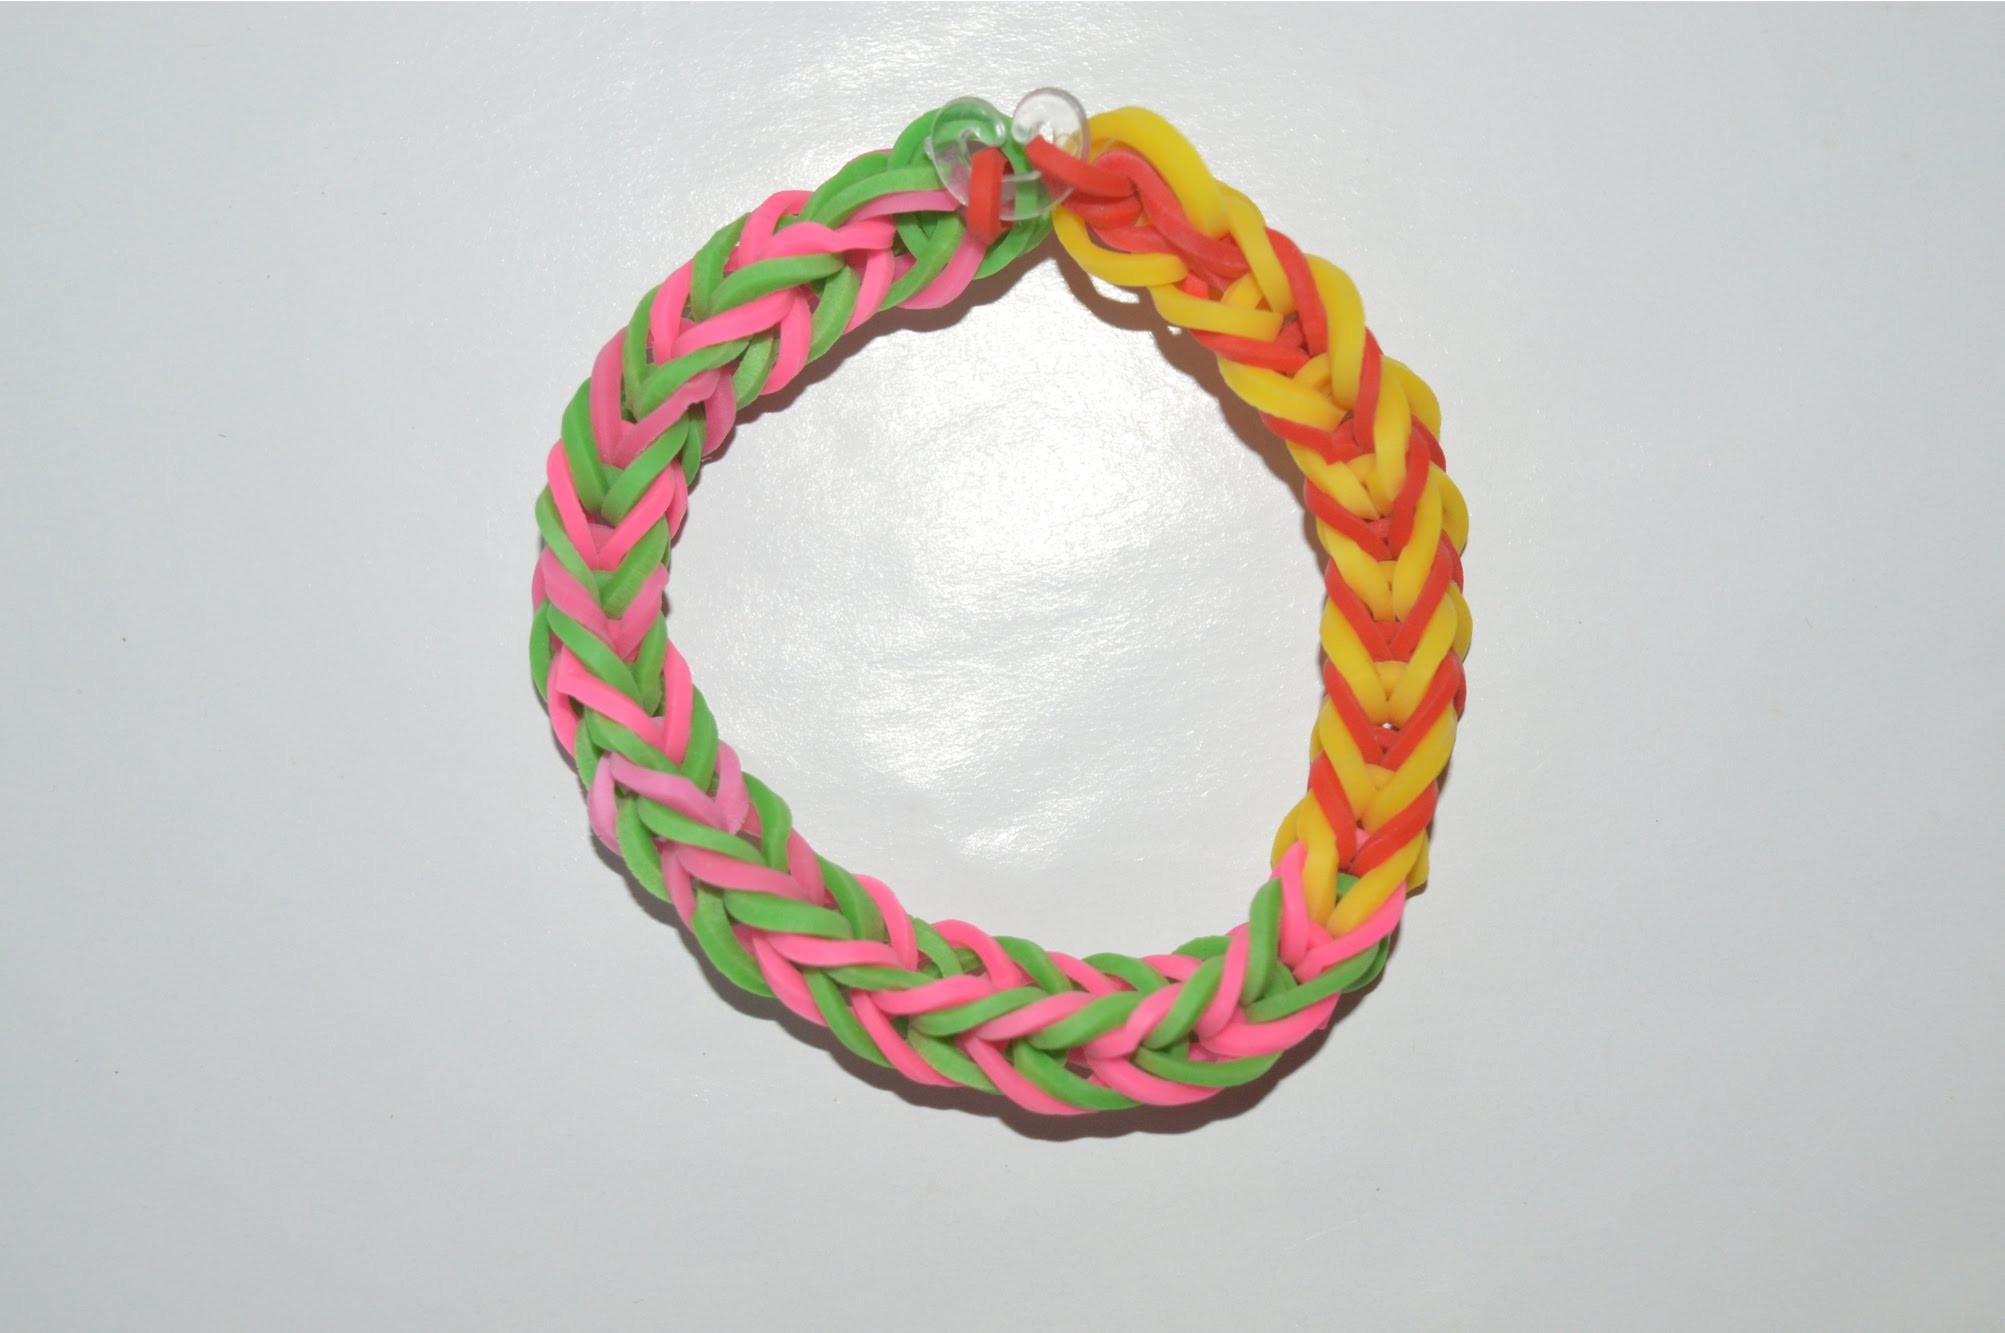 How to Make a Fishtail Bracelet - Step by Step Instruction Tutorial Video - Mazichands.com